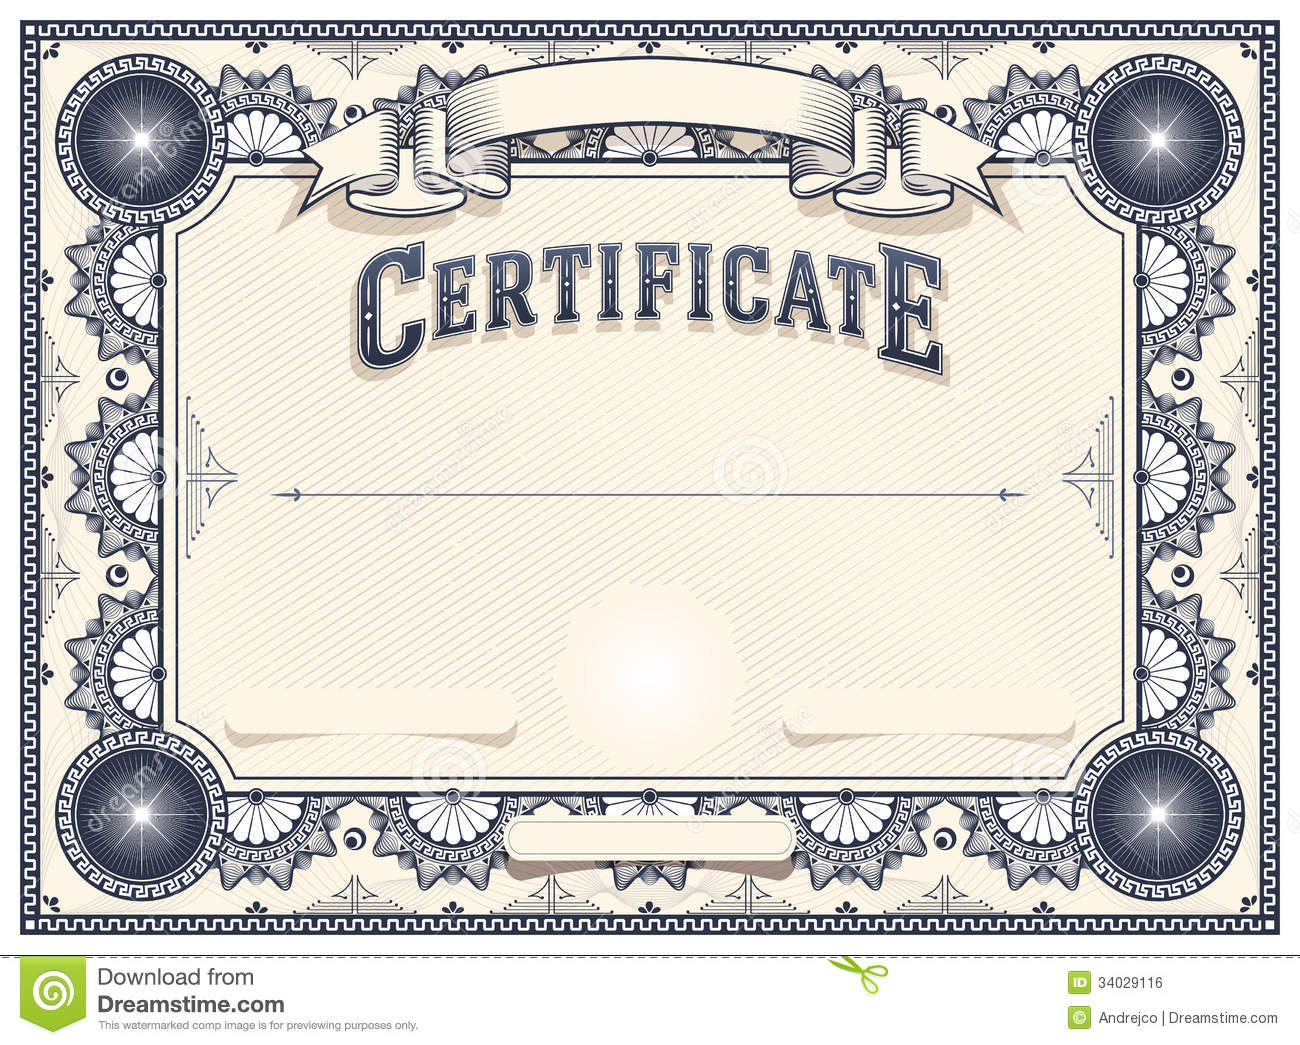 Certificate Or Diploma Template Royalty Free Stock Image - Image ...